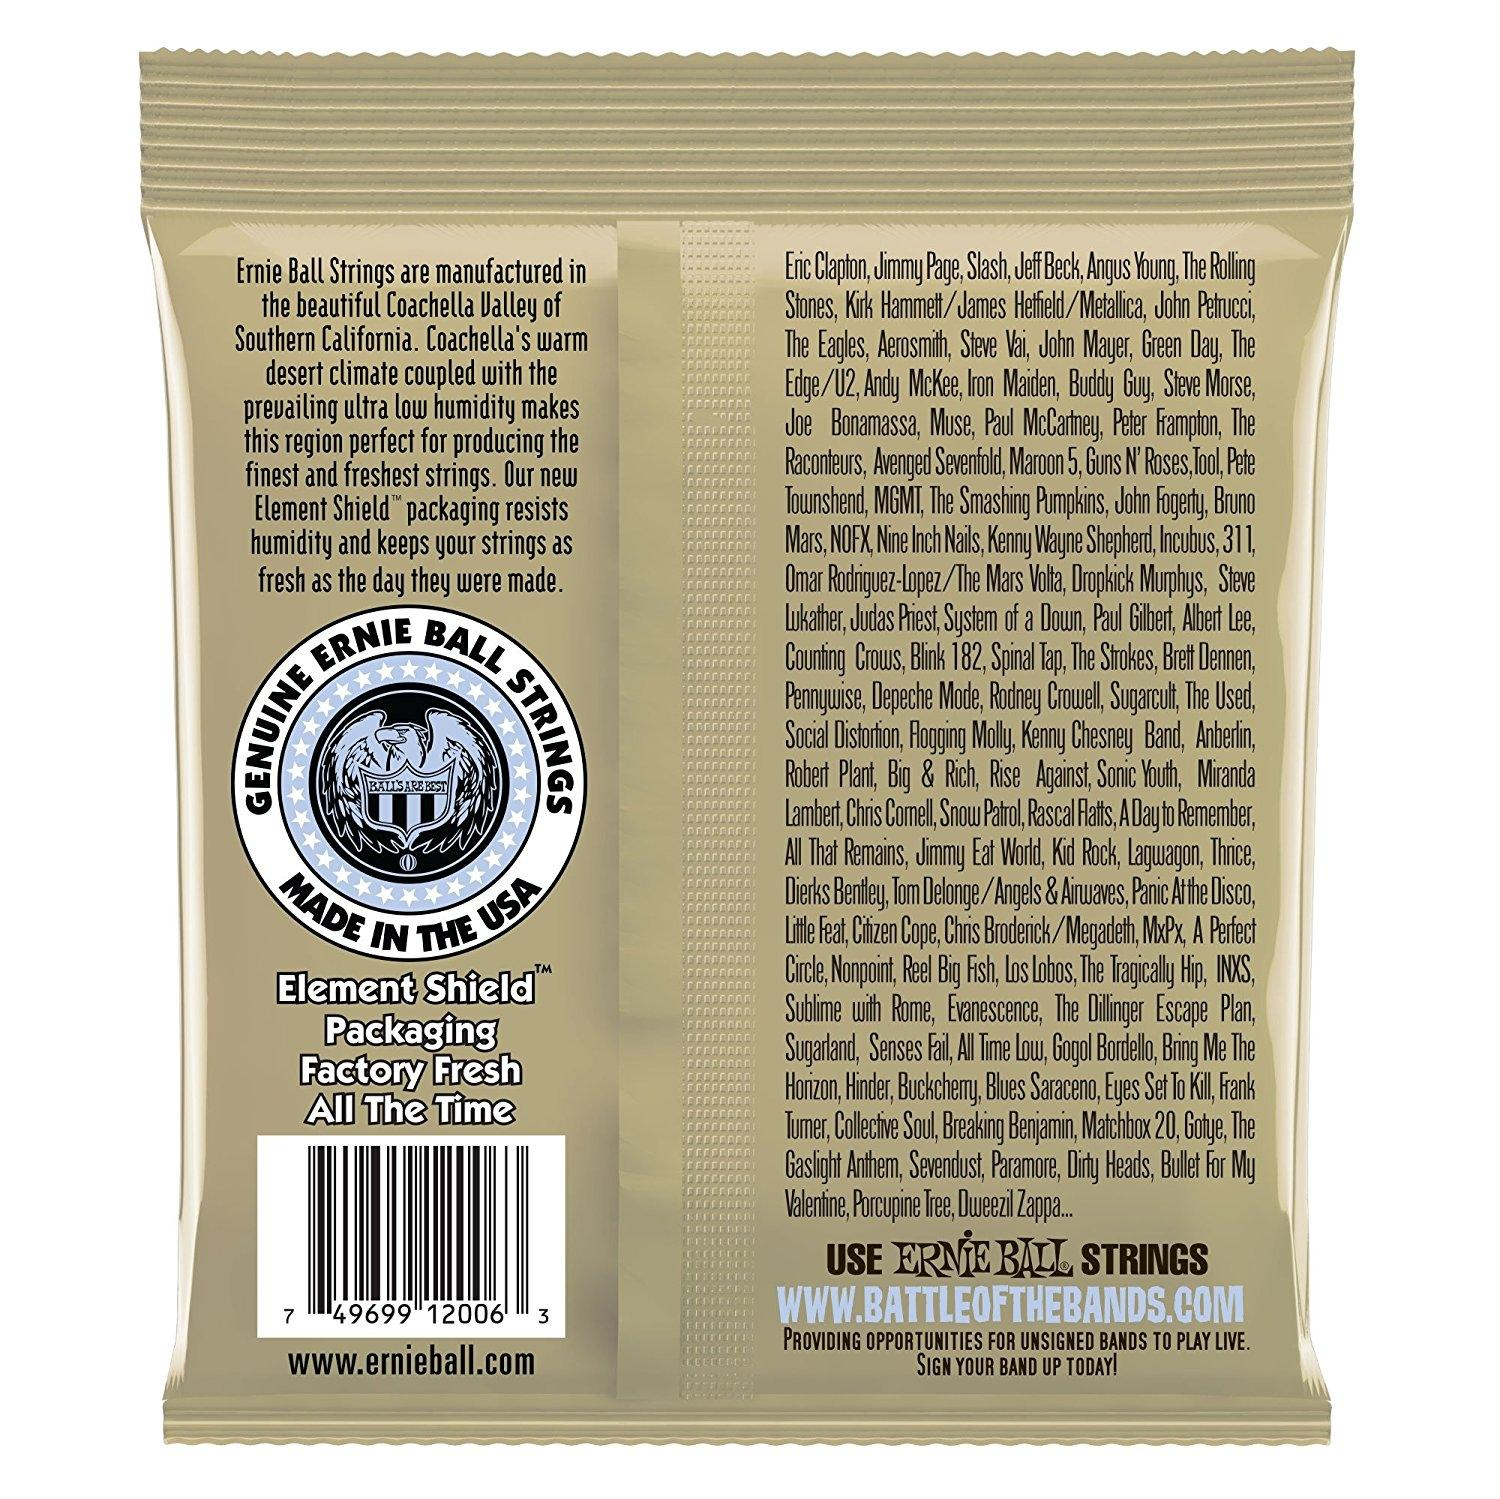 Ernie Ball 2006 Earthwood Extra Light Acoustic Guitar Strings - Silver